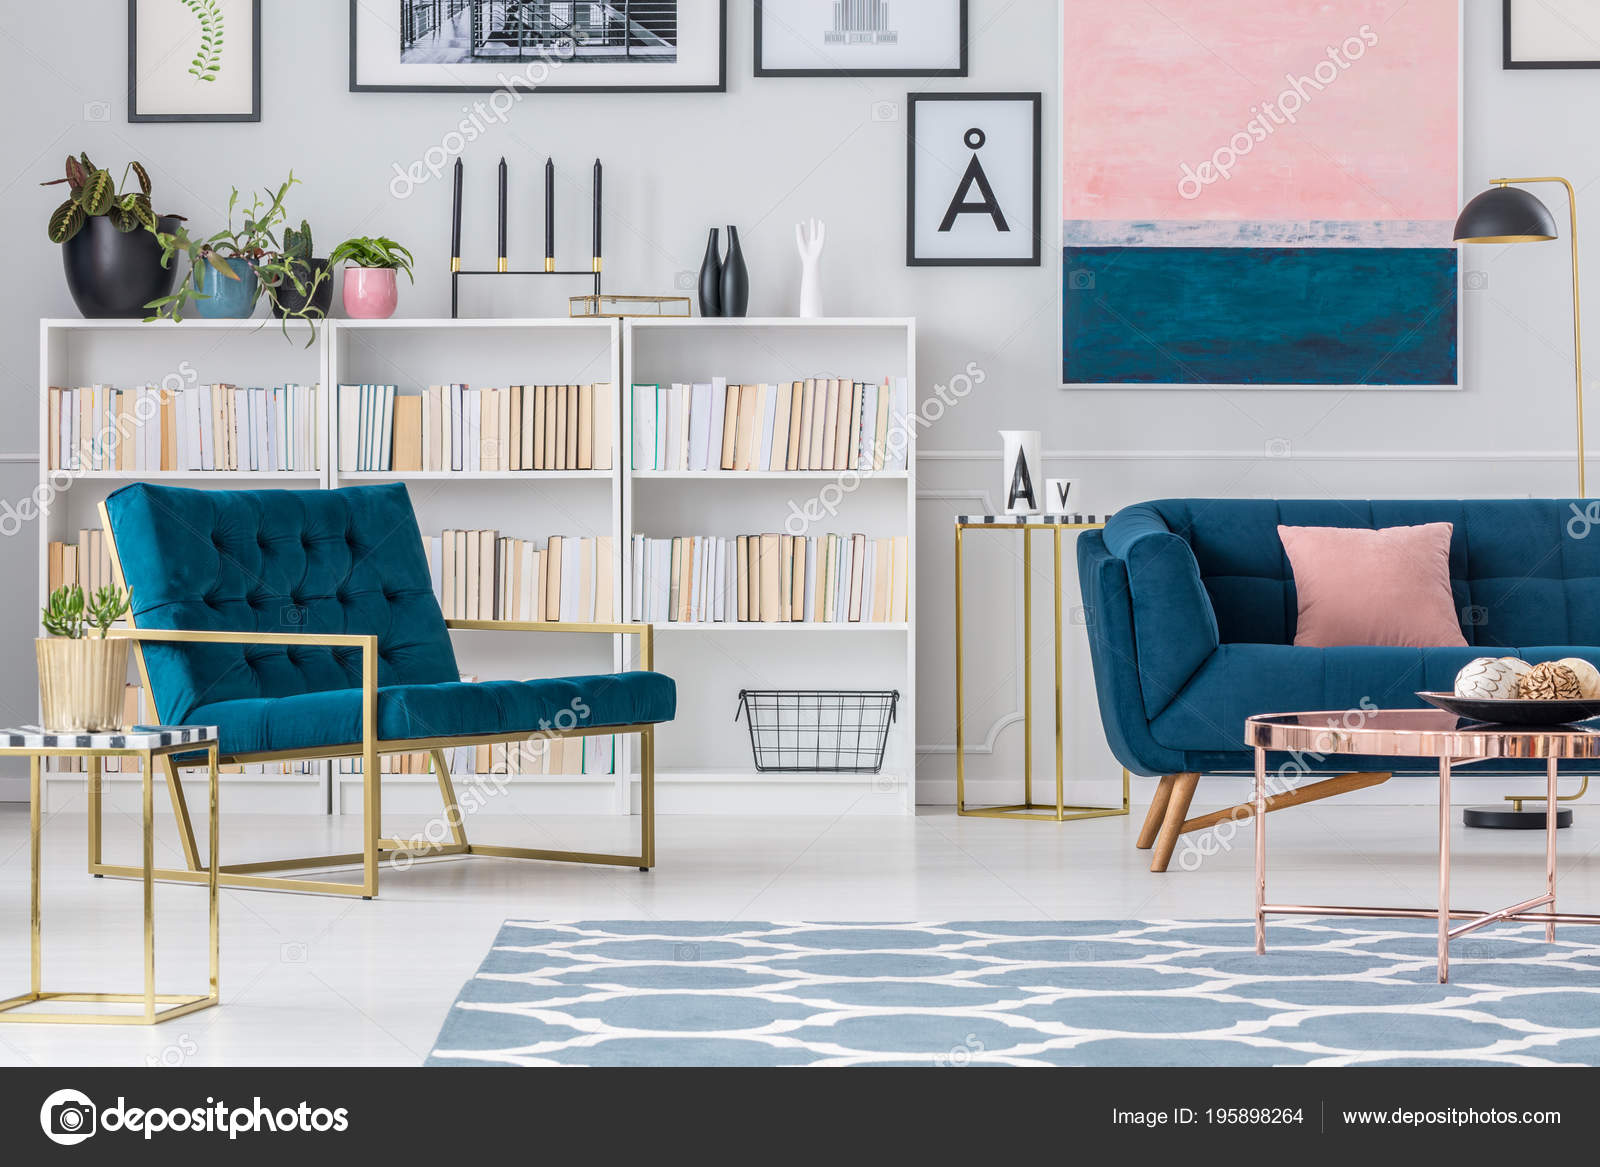 Navy Blue Armchair Bookshelf Living Room Interior Couch Copper Table Stock Photo